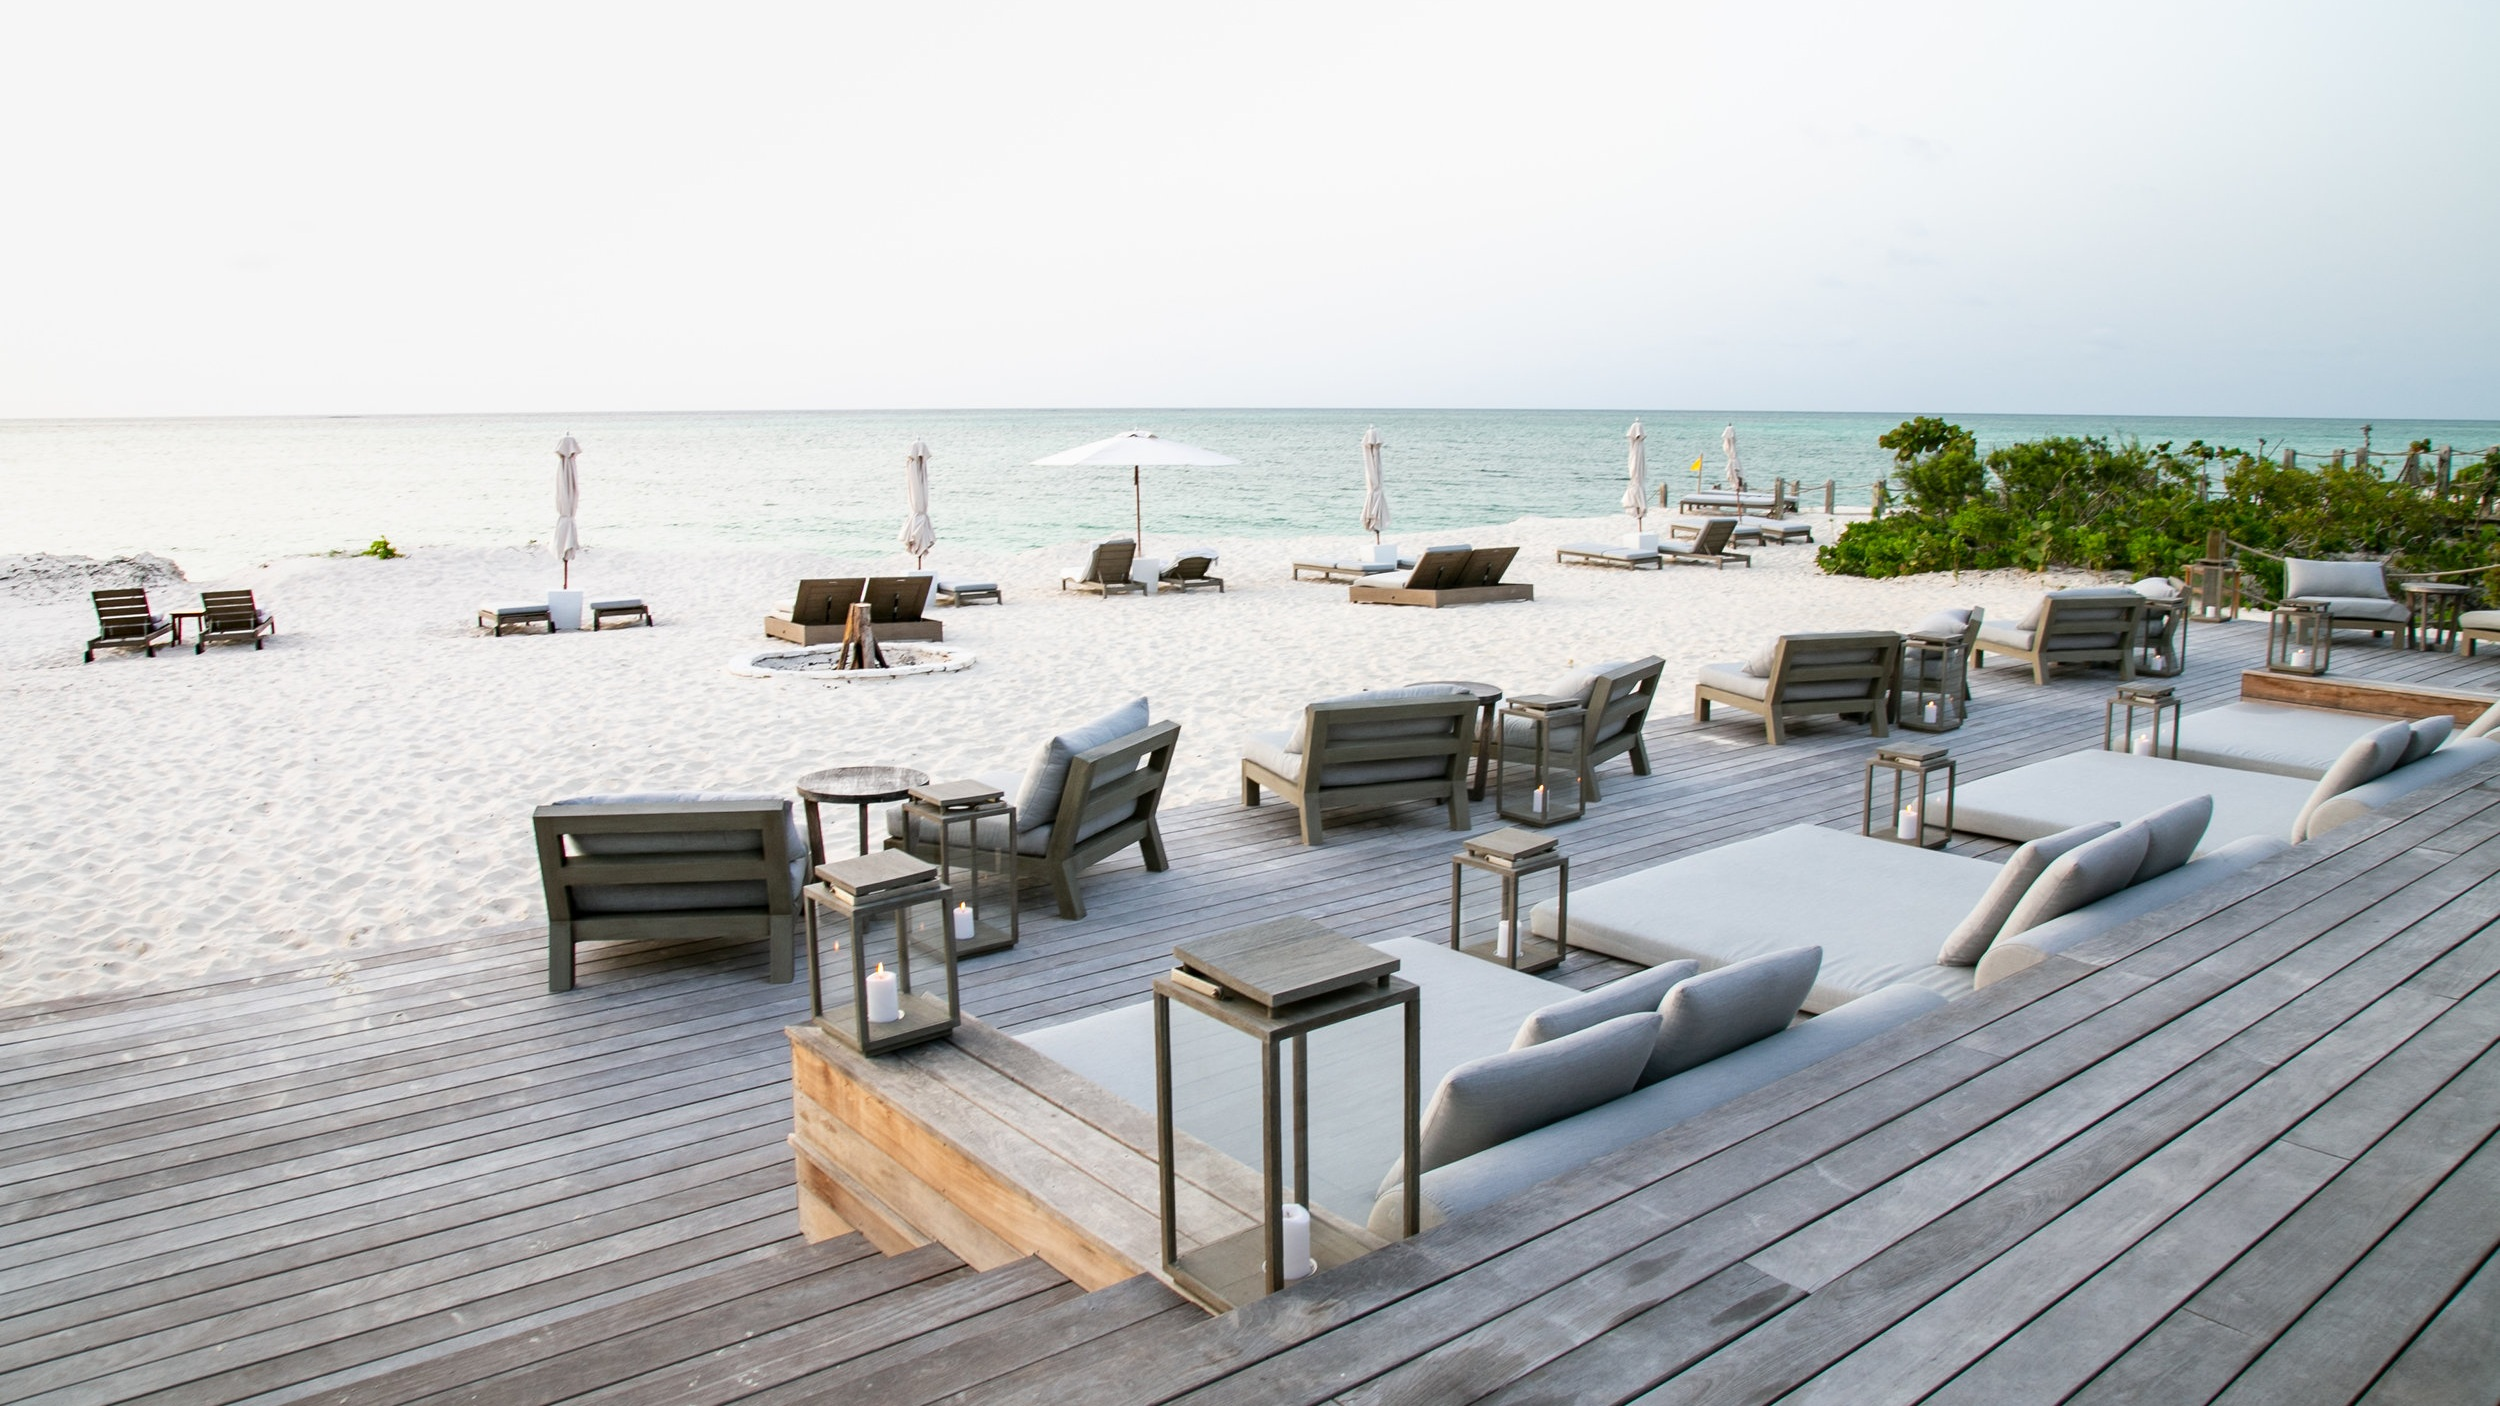 Luxury Travel Planner | Sea to City Travels